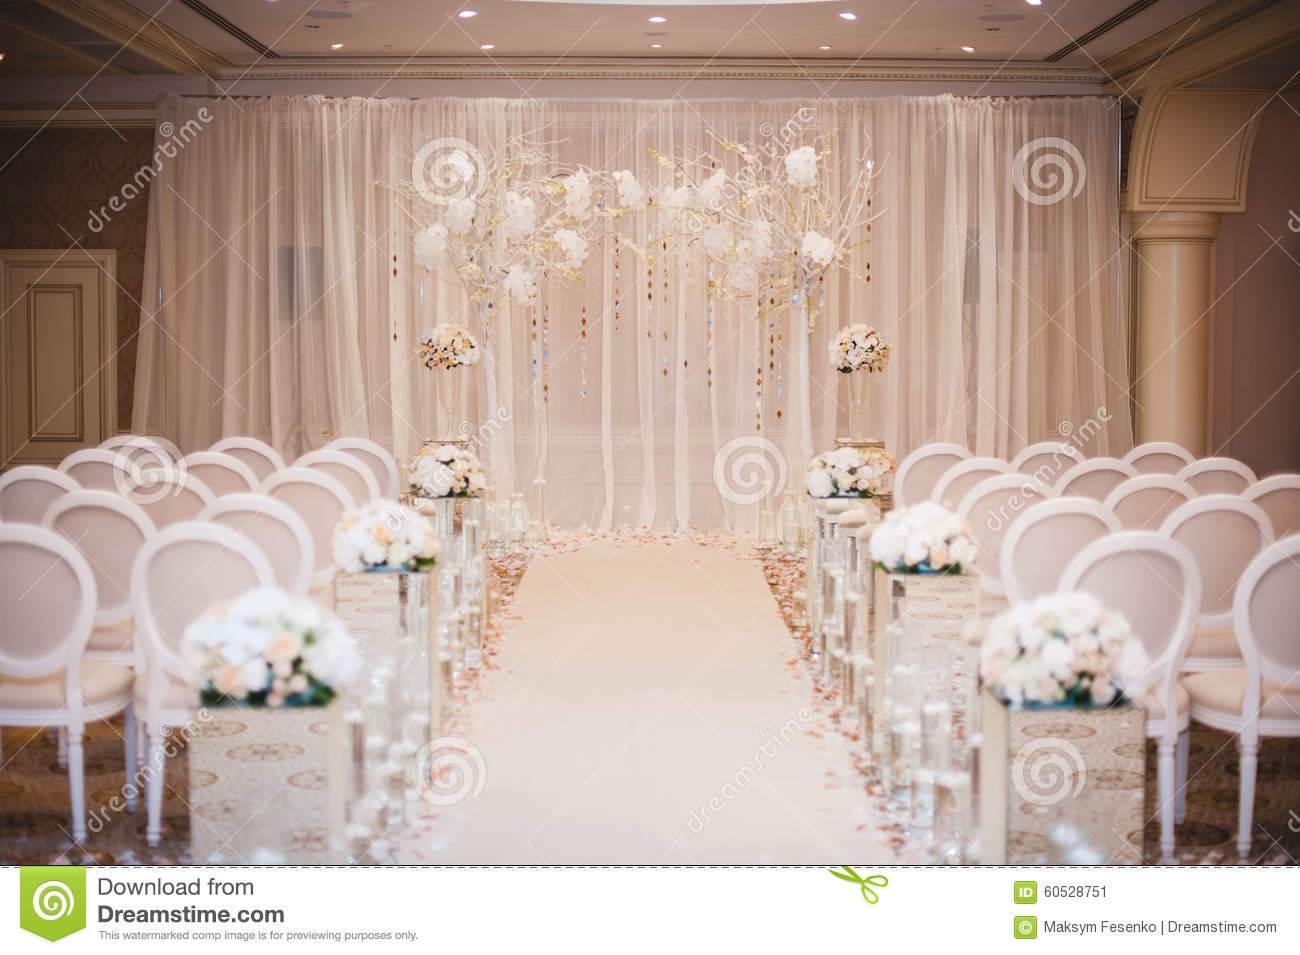 Beautiful Wedding Ceremony Design Decoration Elements With Arch Floral Design Flowers Chairs